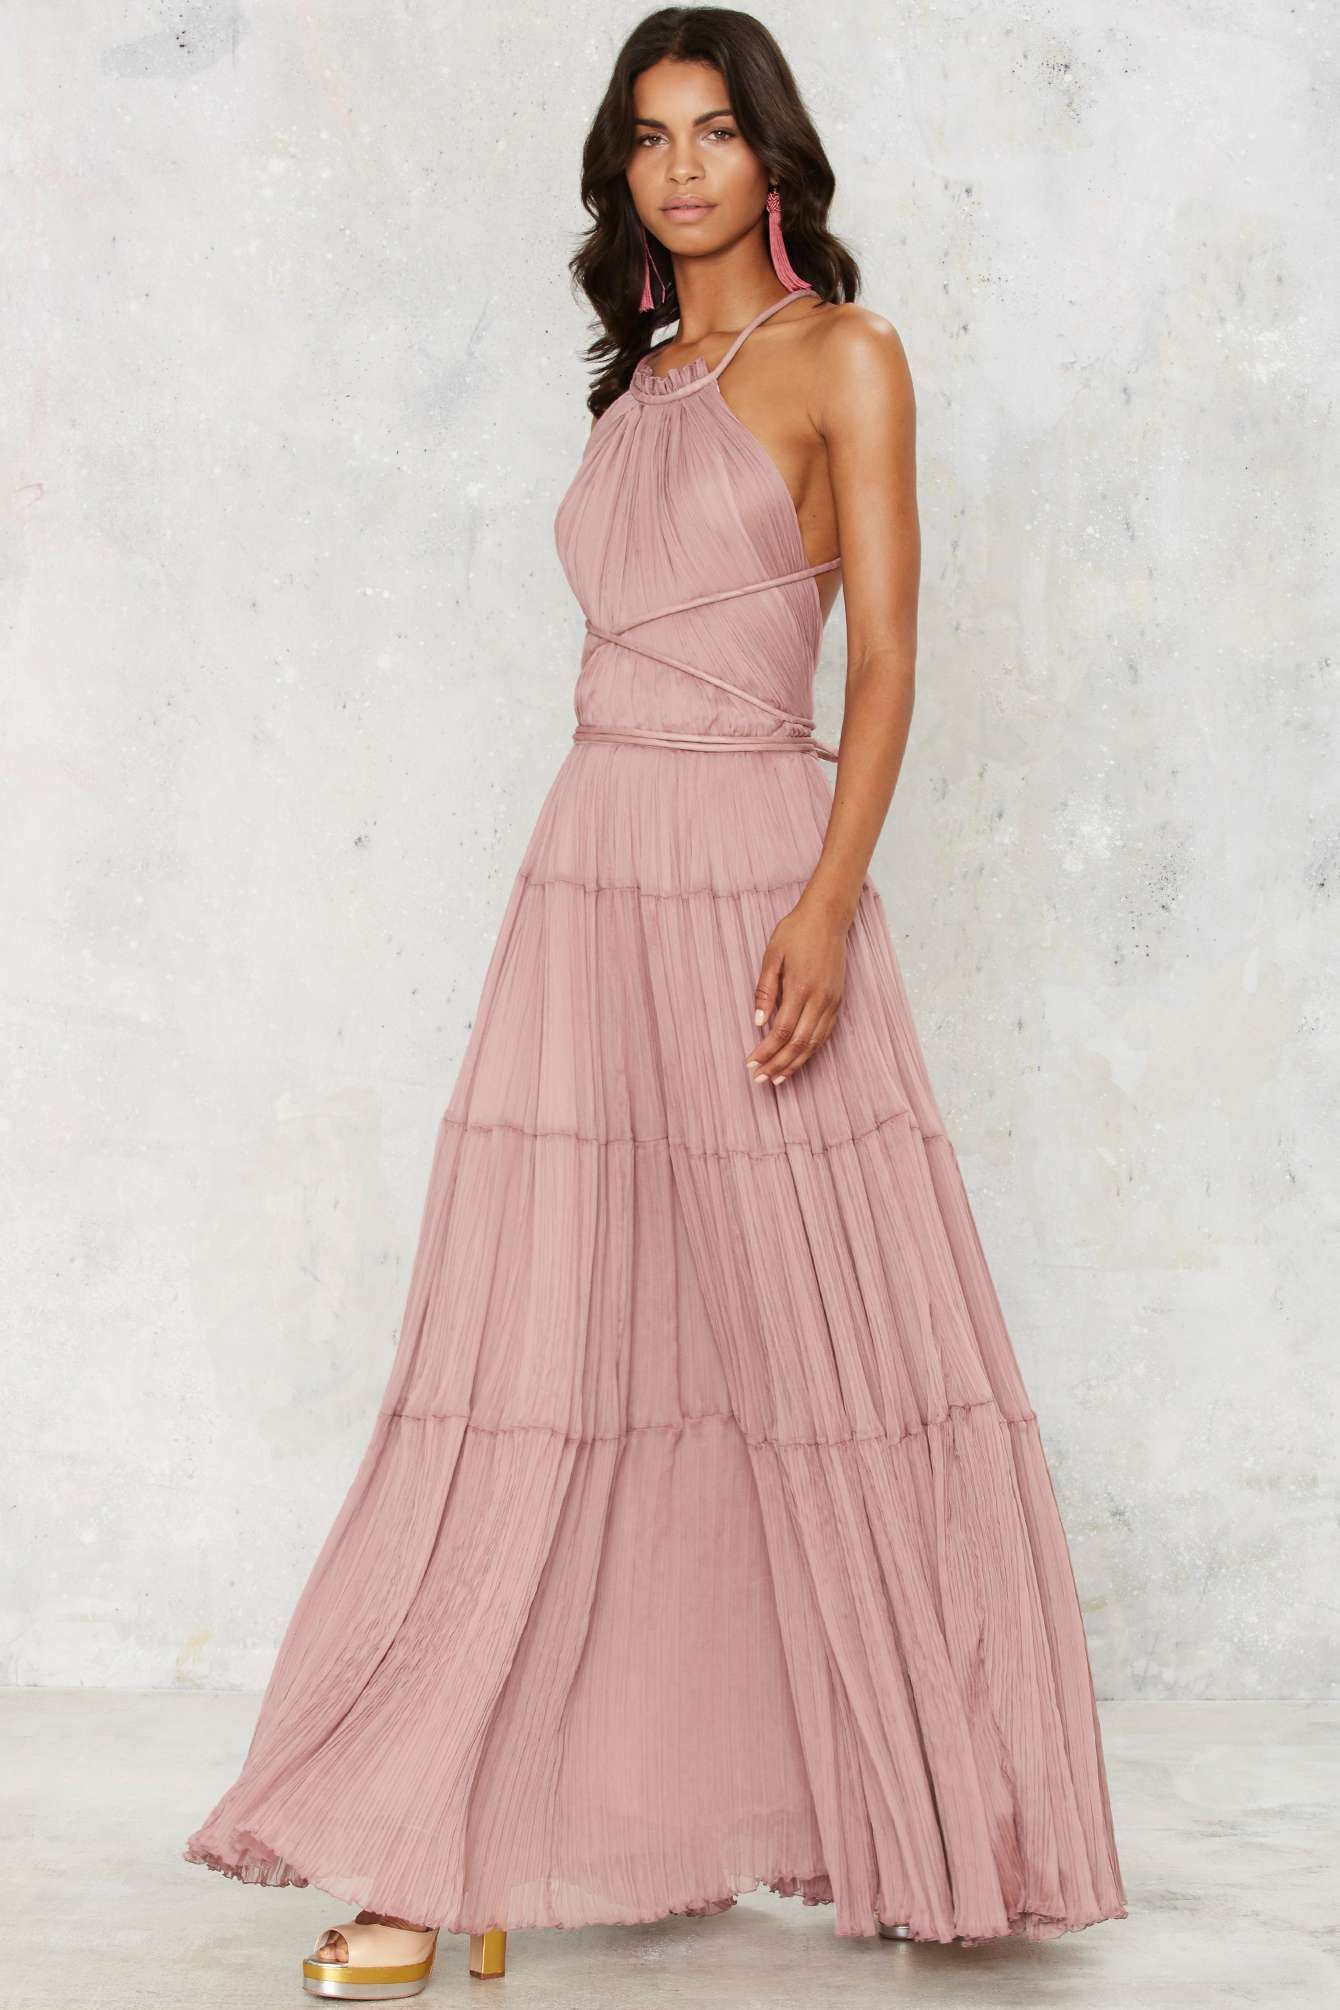 at nasty gal bacall maxi dress | styles that rock 7 | Pinterest